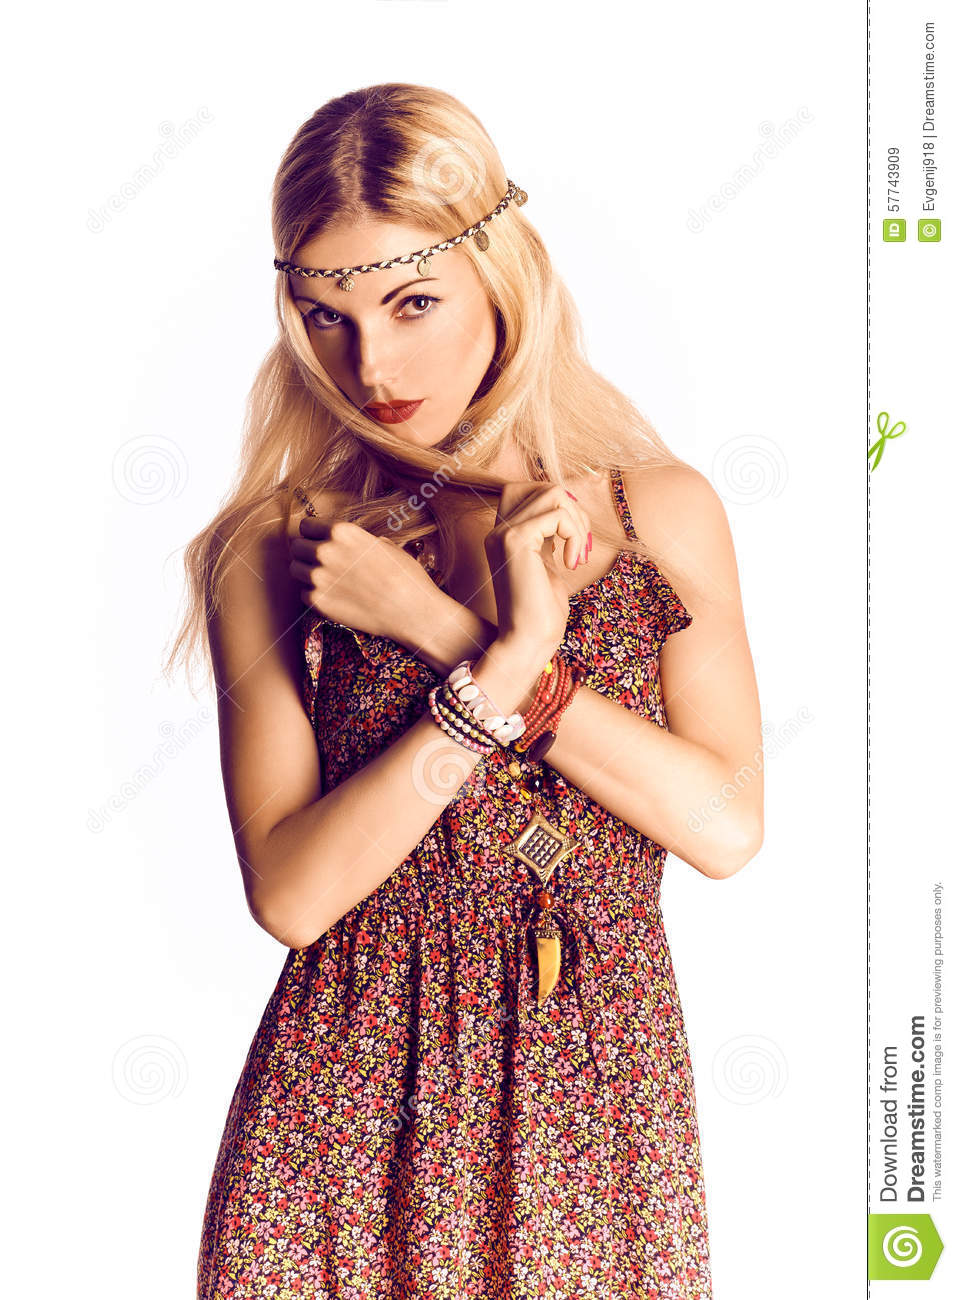 Beauty Portrait Of Boho Joyful Blonde Woman, Happy Stock